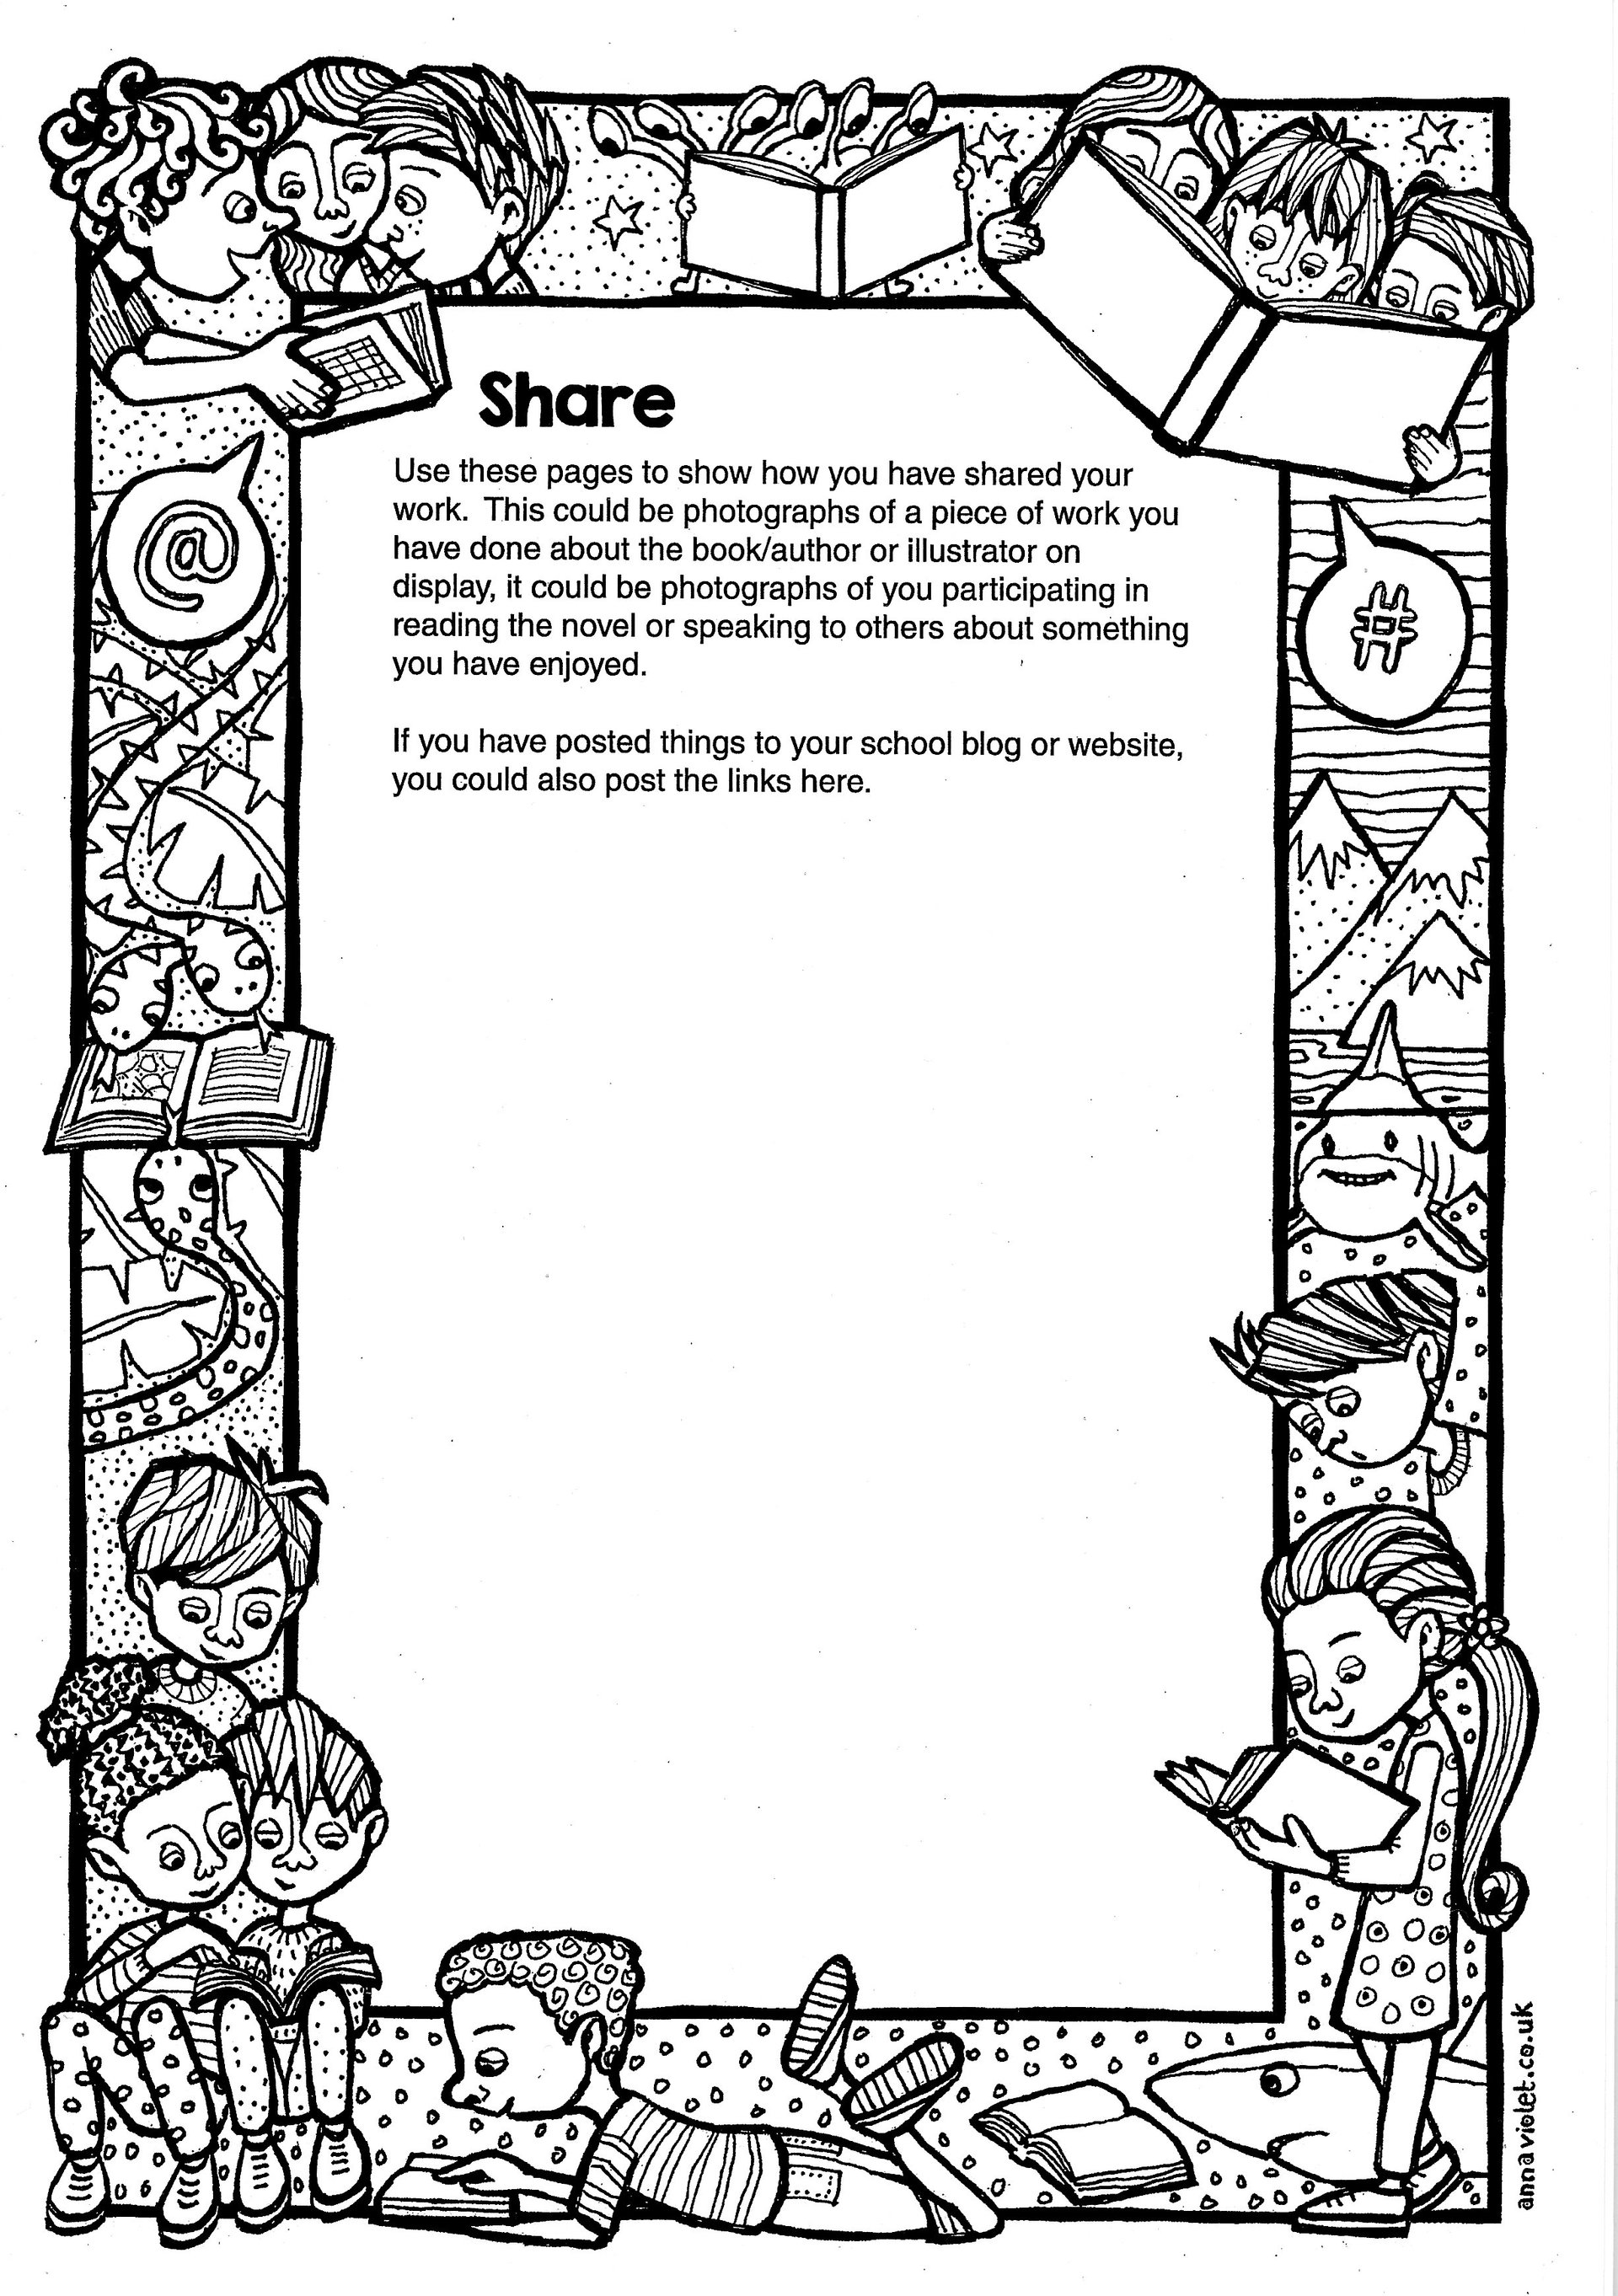 colouring in, line drawing, children, reading, books, discover, share, find out,  discover arts award